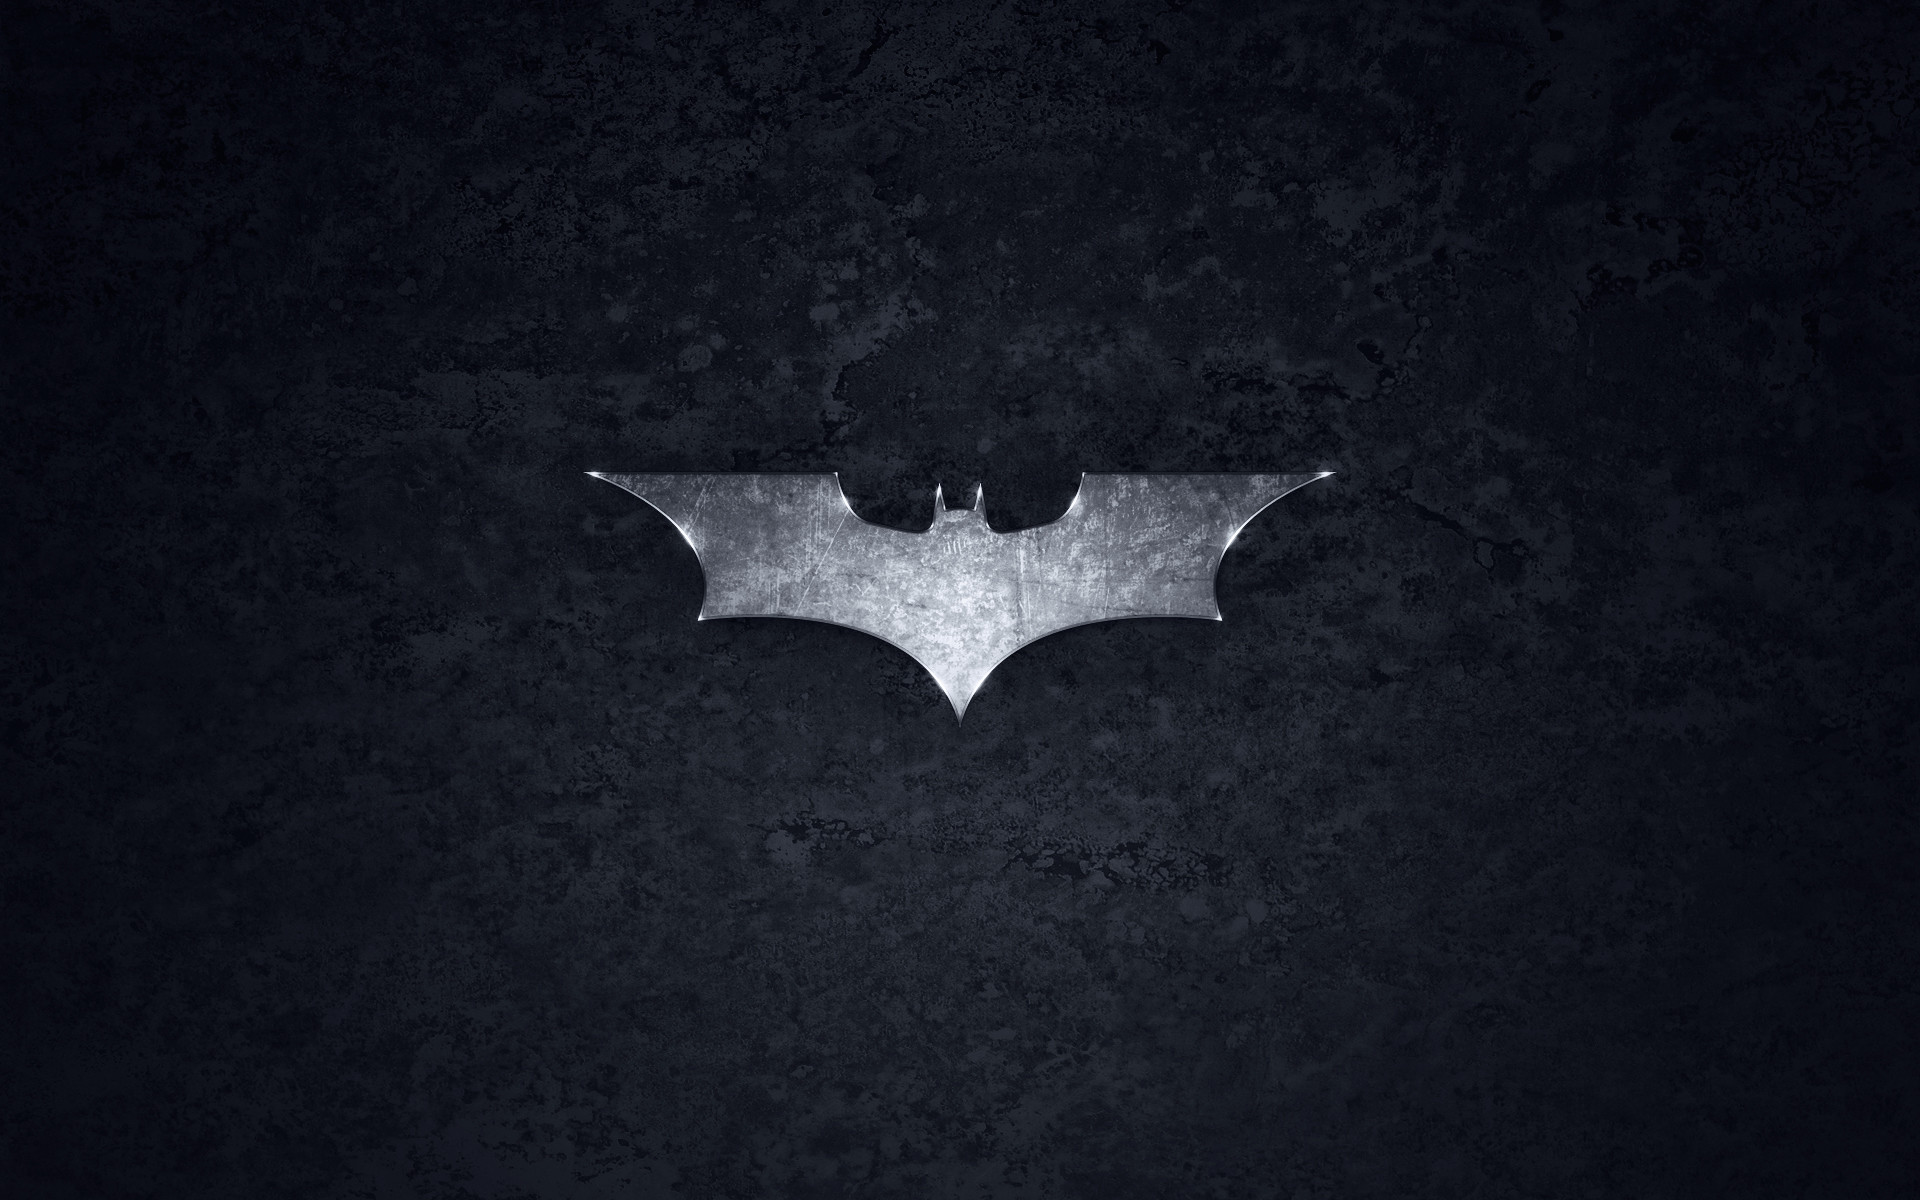 batman logo wallpaper android with high resolution desktop wallpaper on  movies category similar with arkham knight beyond comic iphone joker logo  superman …